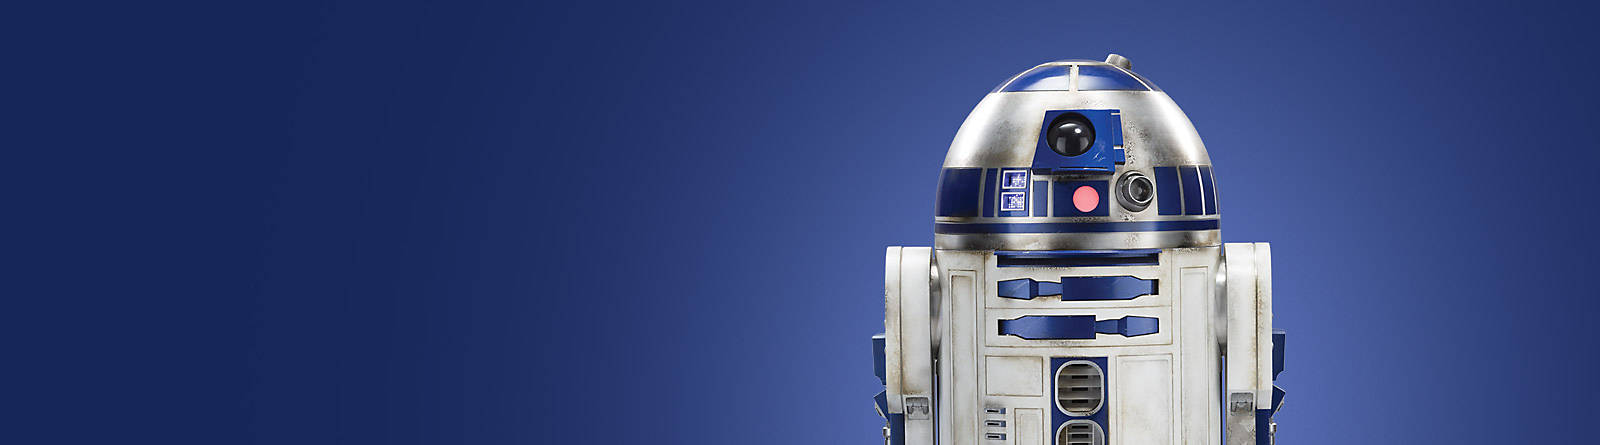 R2-D2 This is the droid you're looking for.  Discover our range of R2-D2 toys, figurines and more